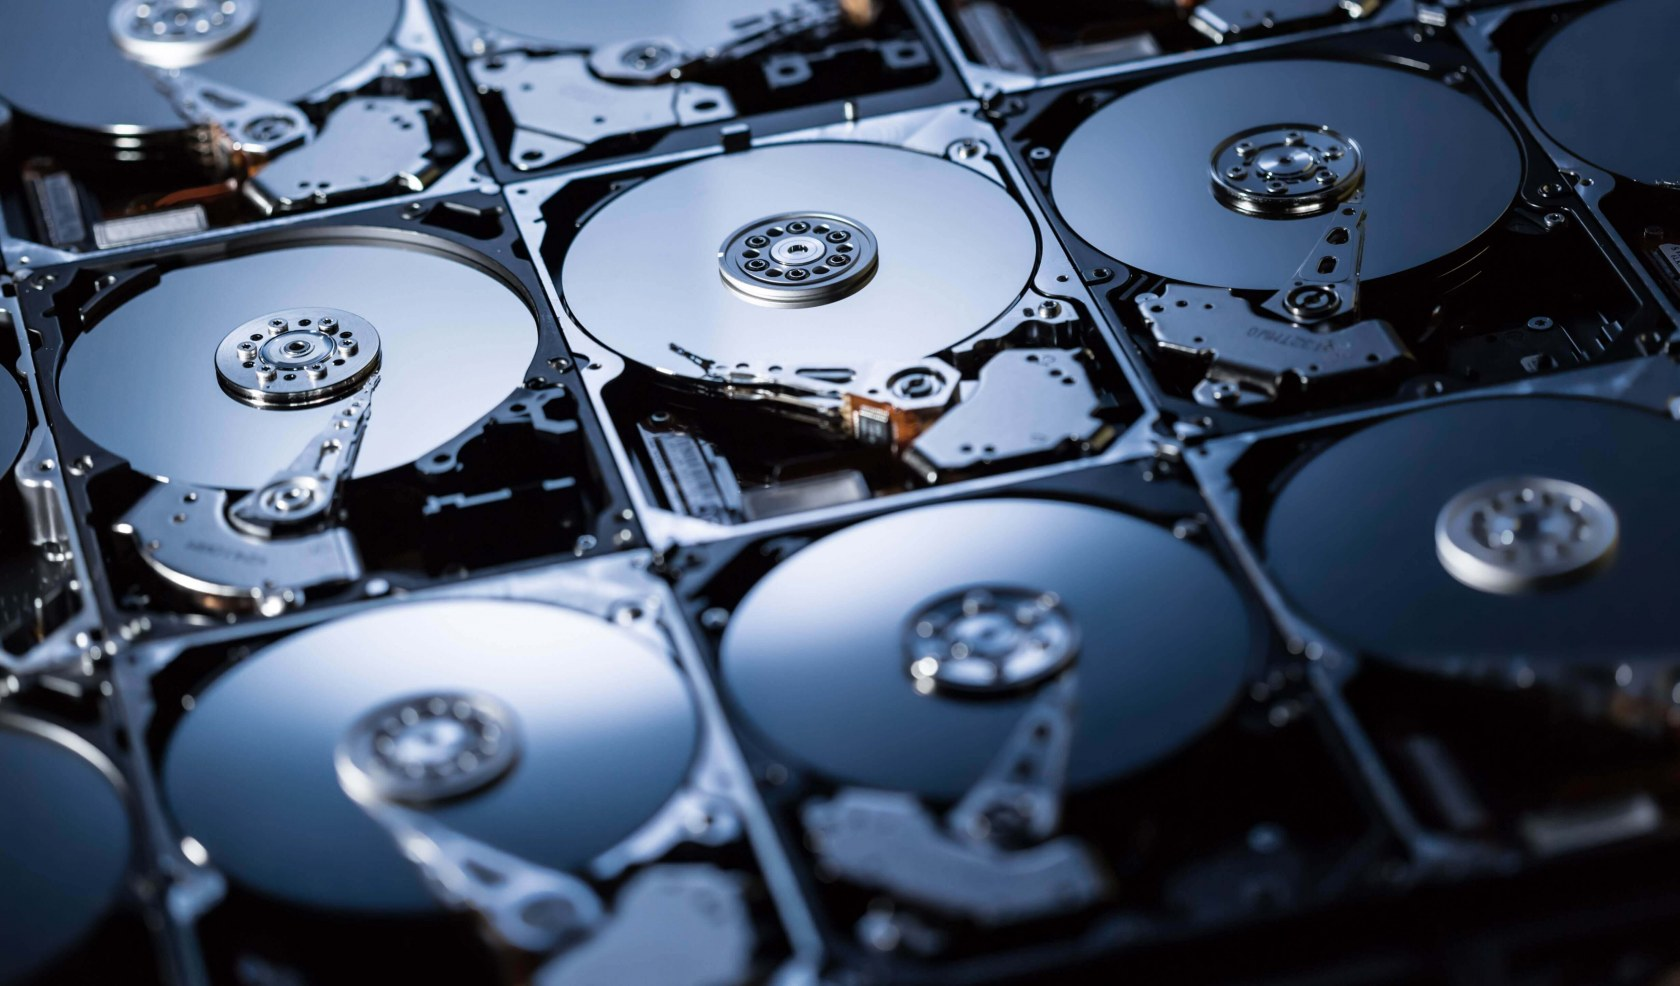 PC hard drive shipments could fall by 50 percent in 2019